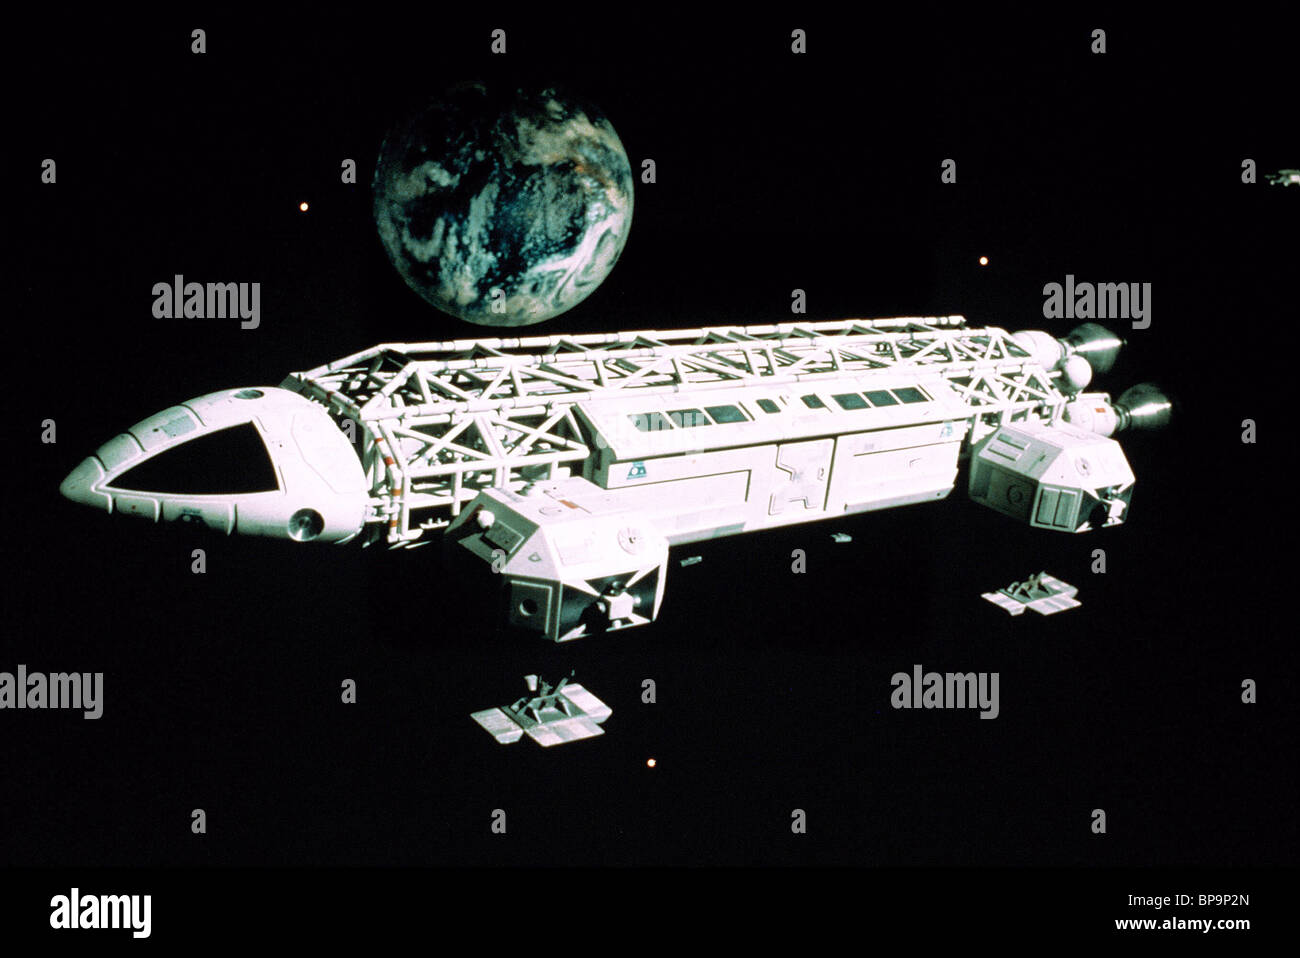 EAGLE TRANSPORTER SPACECRAFT SPACE 1999 ; SPACE: 1999 (1975) - Stock Image